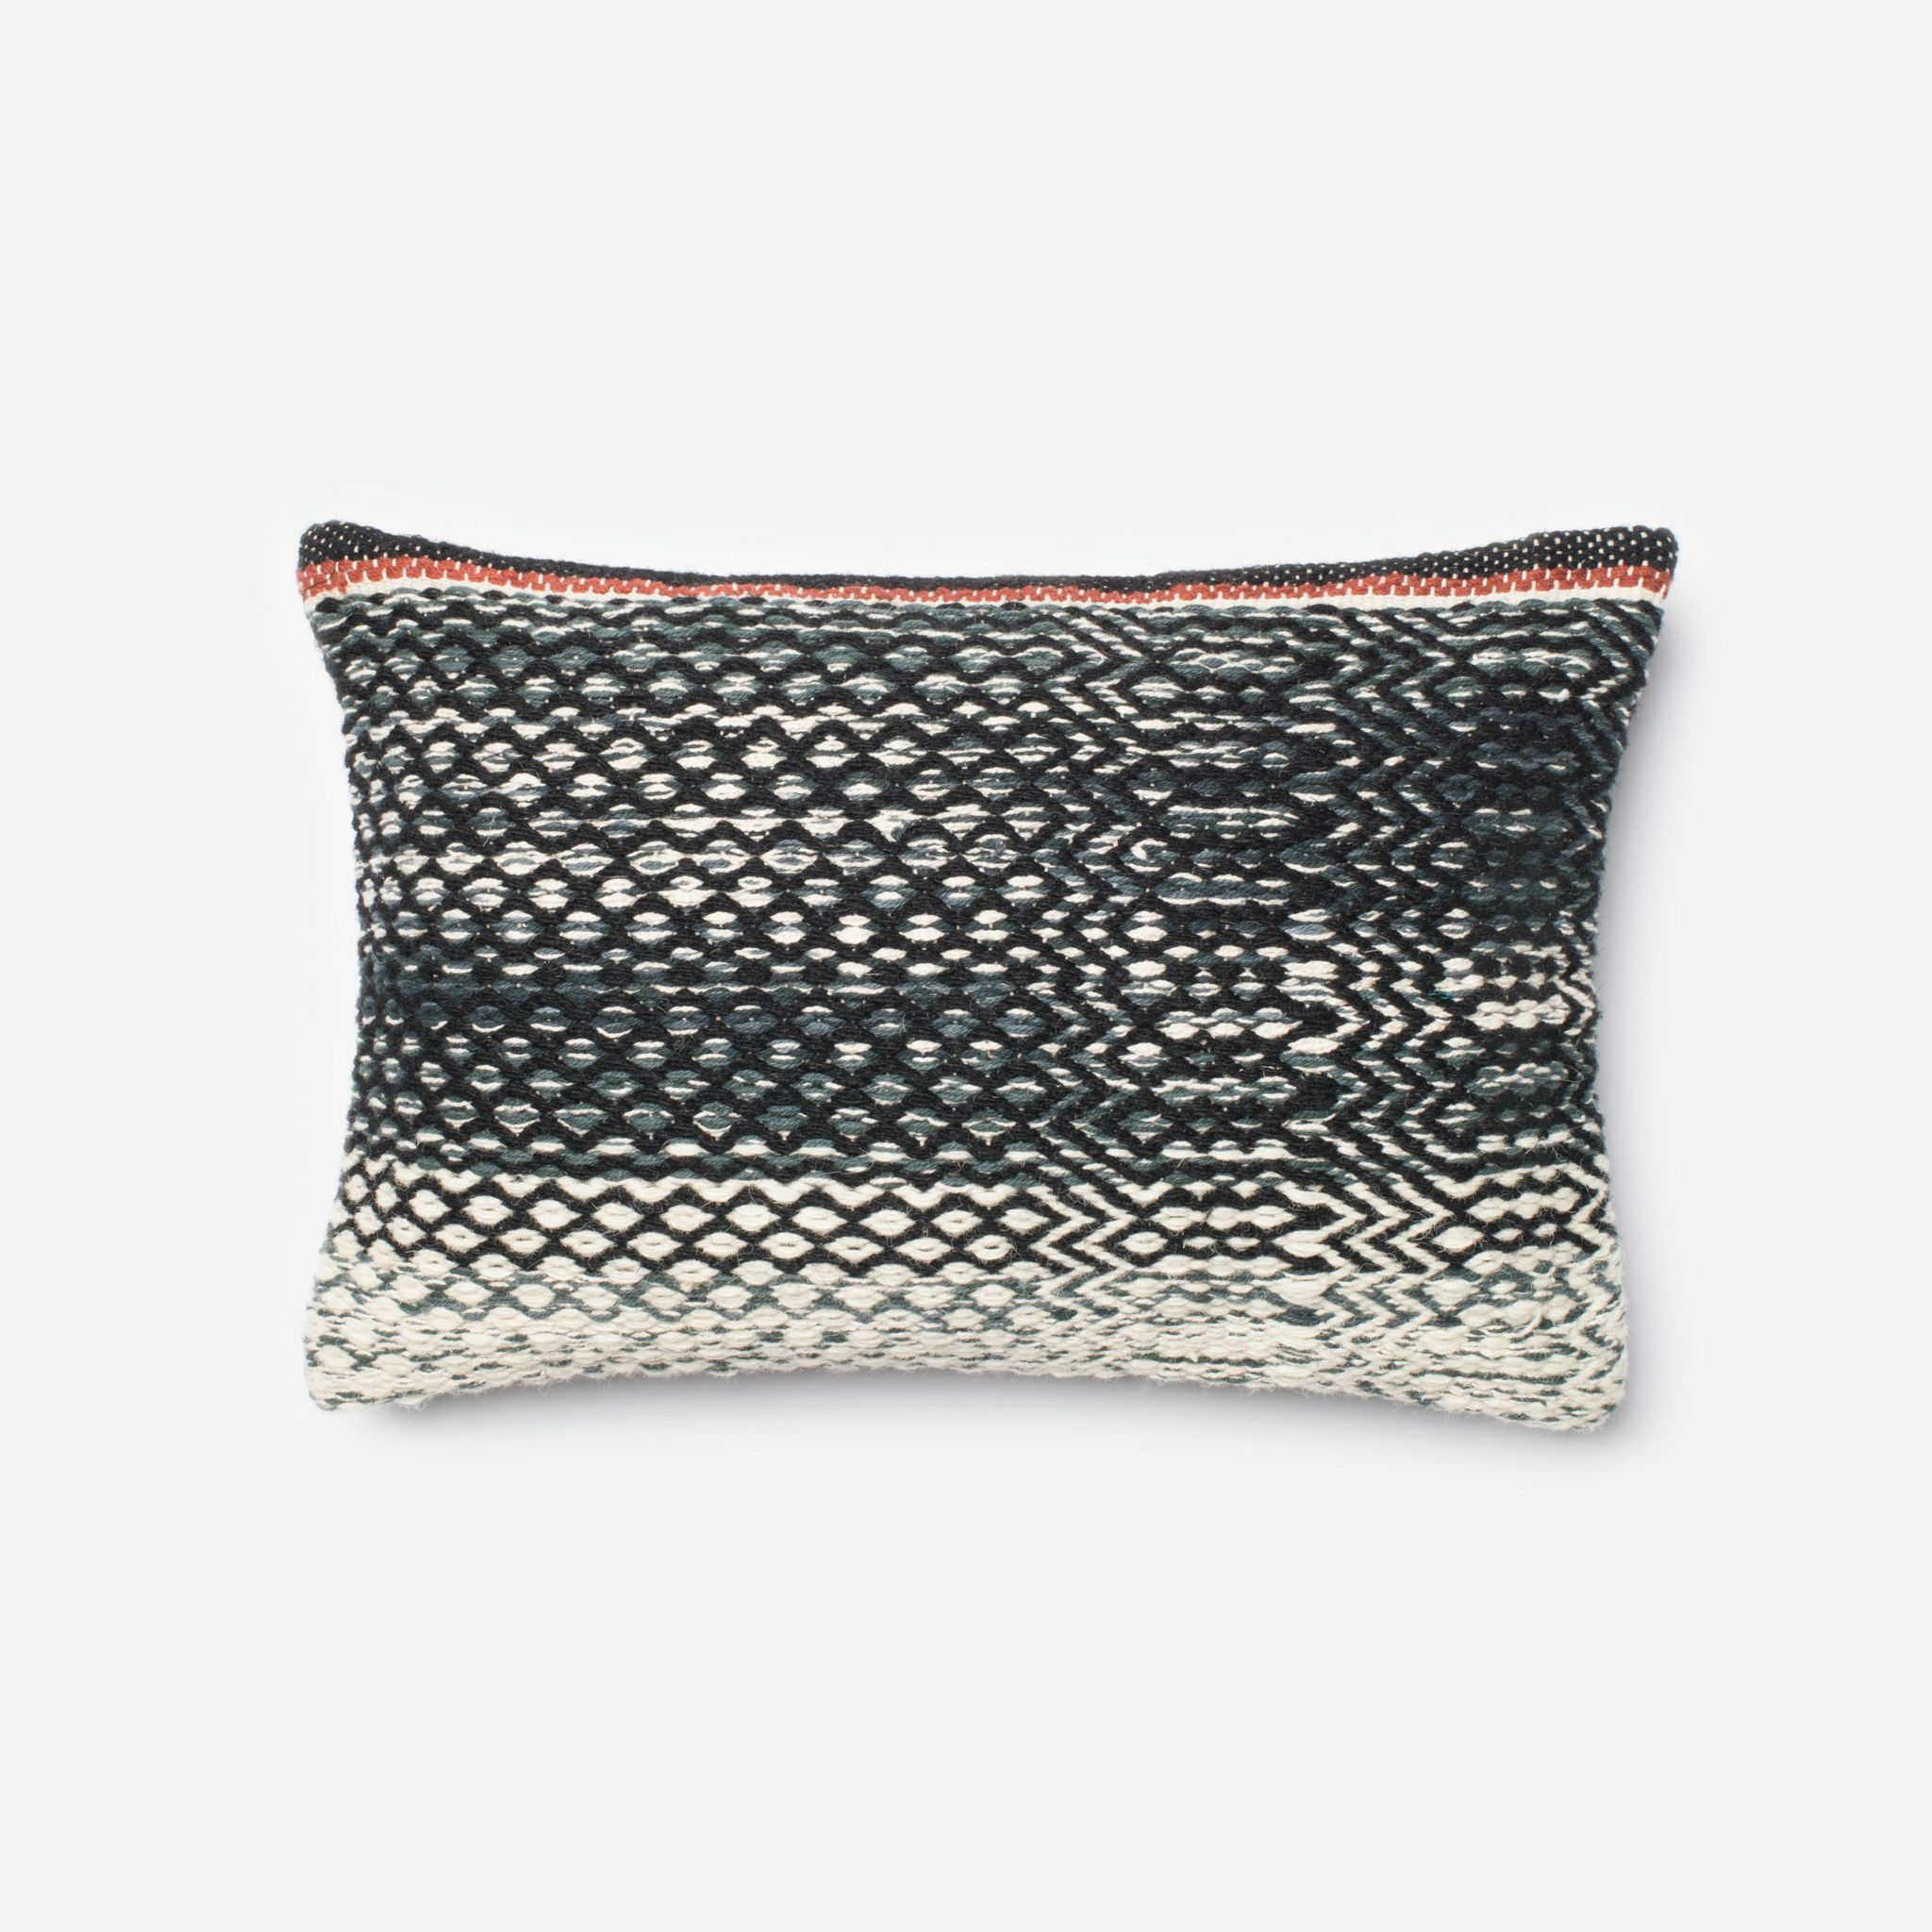 Bohemian Chic Pillows By Loloi Ivory Pillow Loloi Pillows Throw Pillows